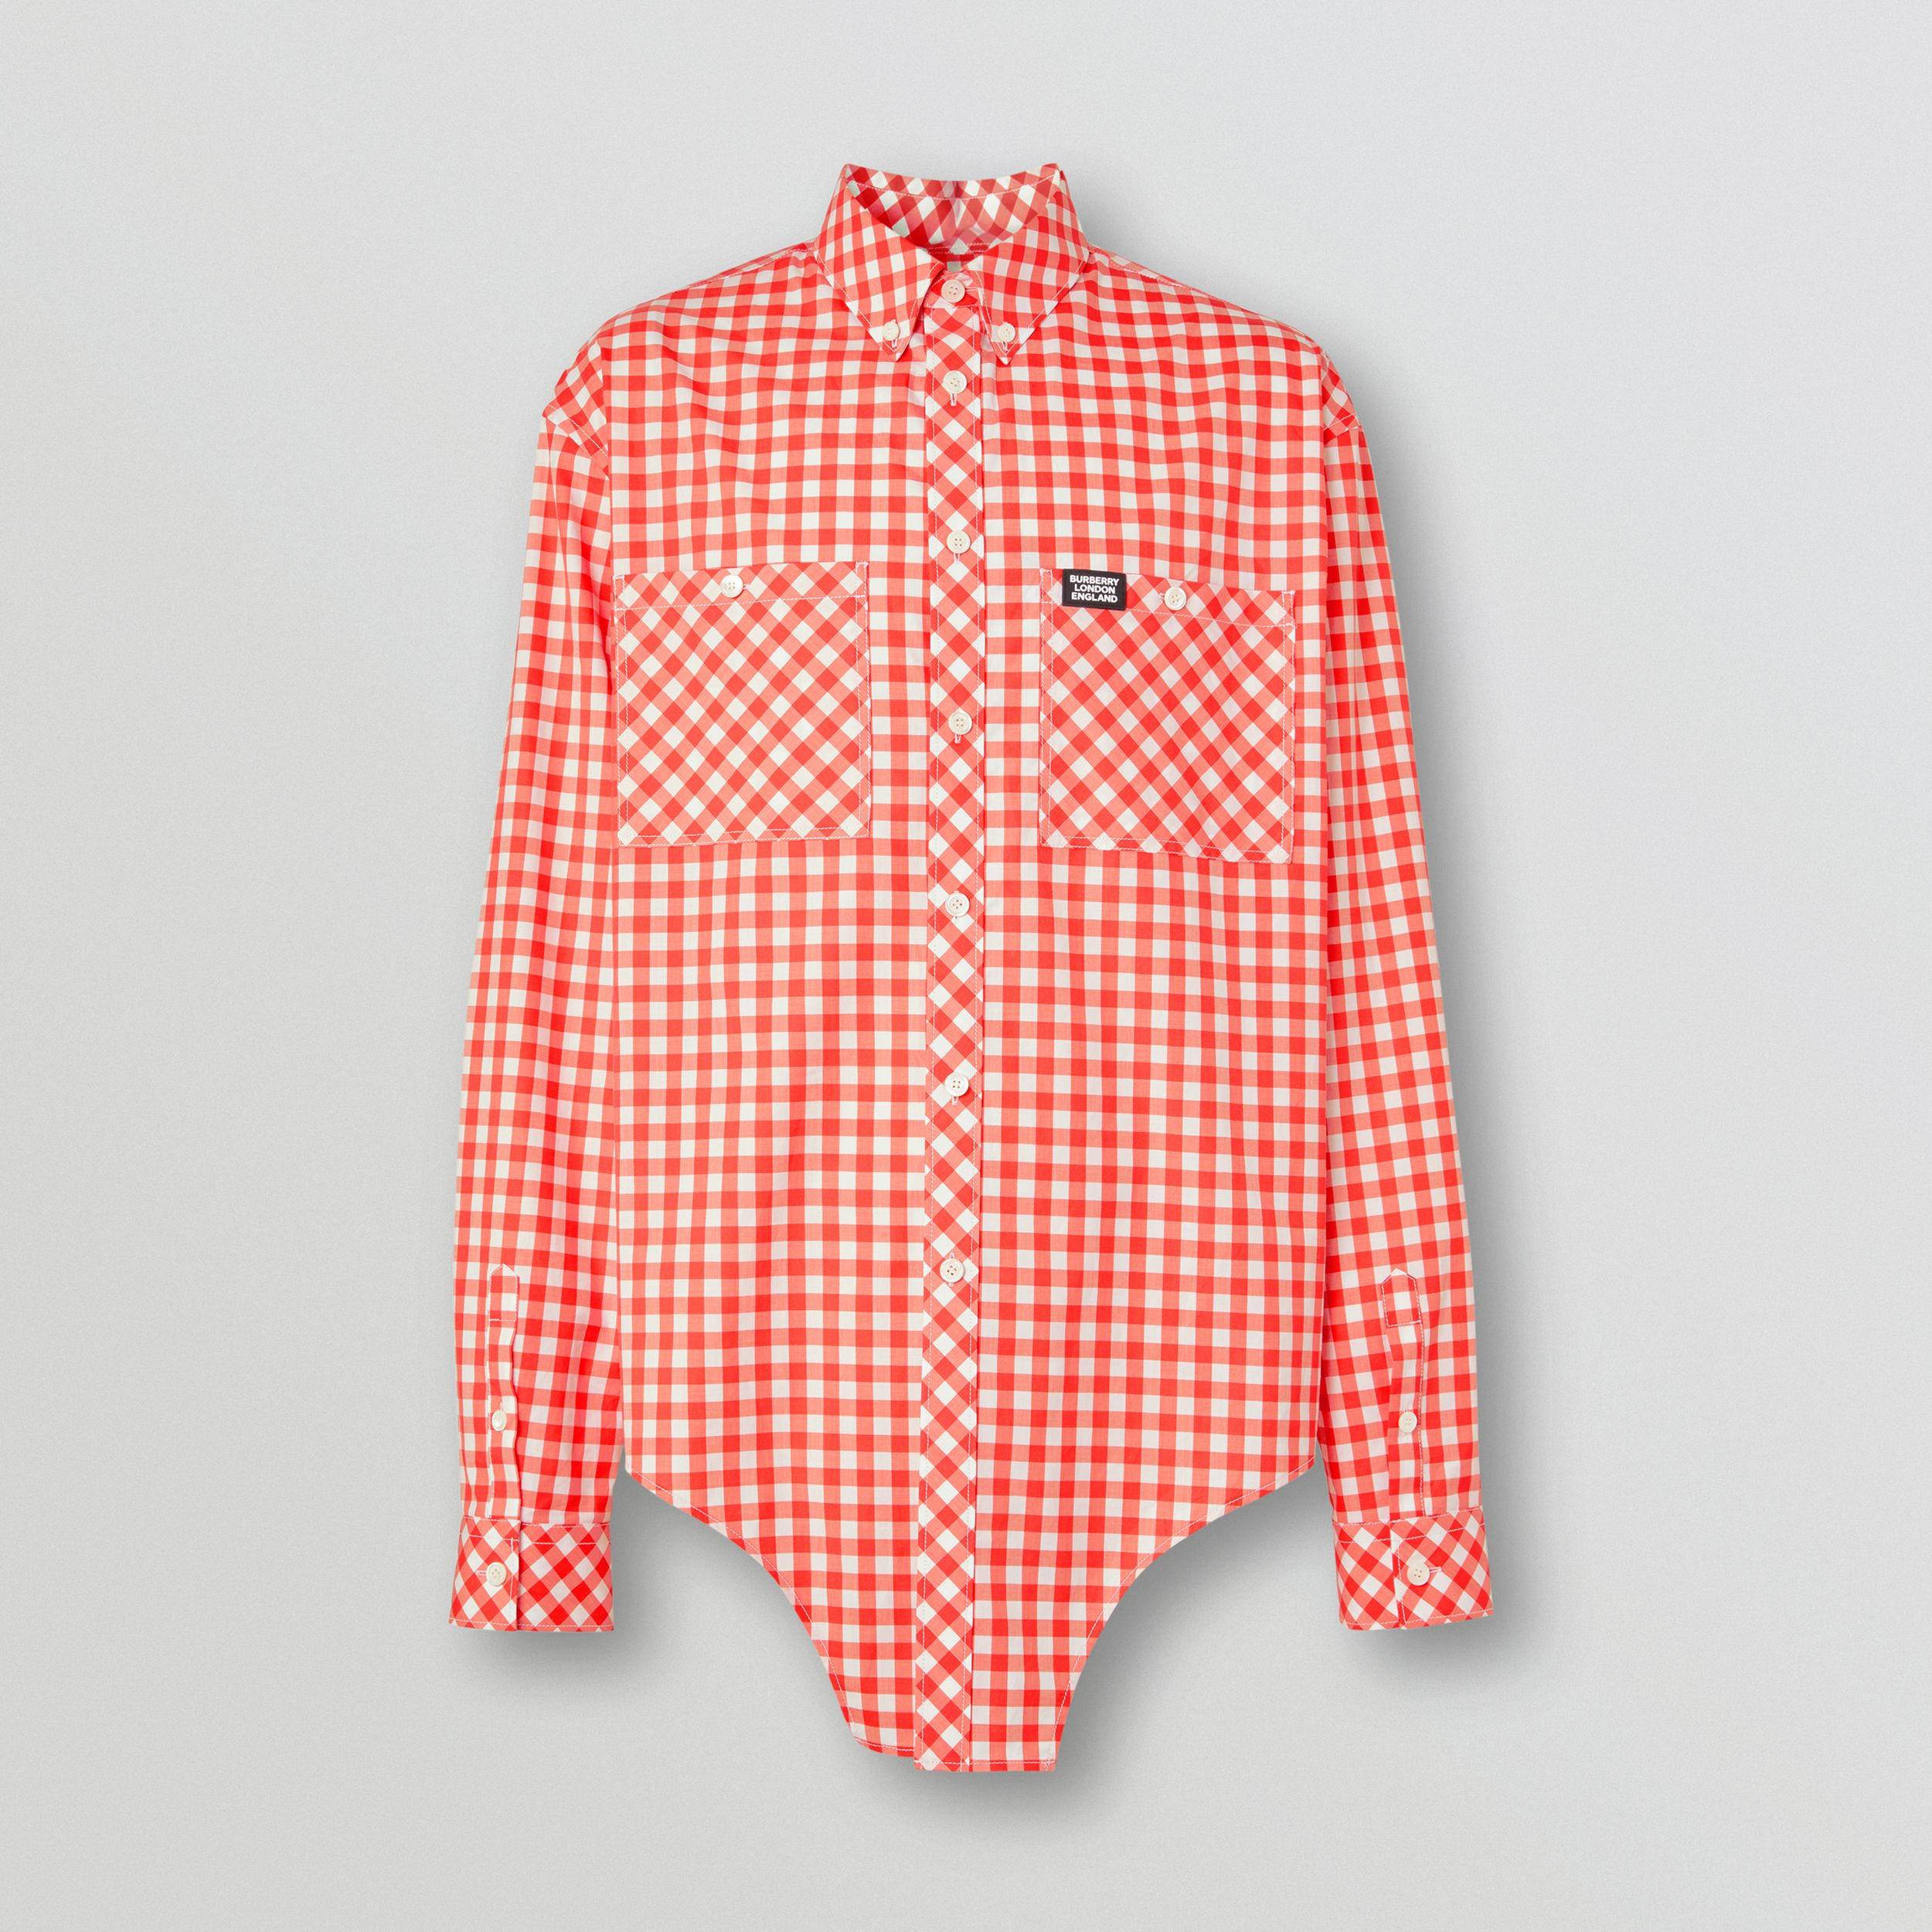 Cut-out Hem Gingham Cotton Oversized Shirt in Red - Men | Burberry - 4